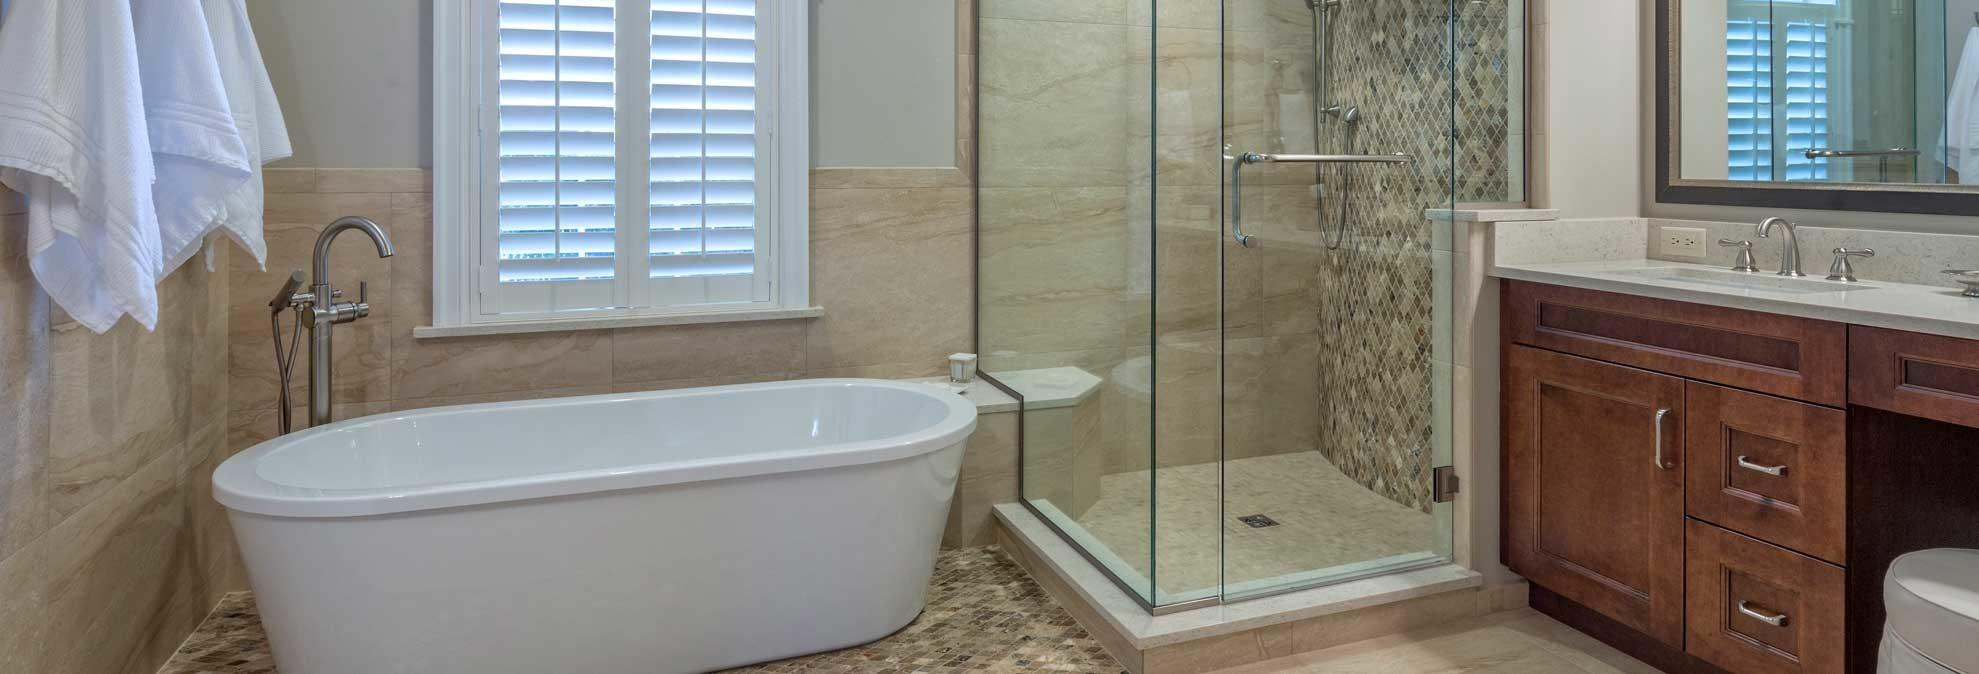 Cleaning Tips Make Your Bathroom Sparkle Consumer Reports